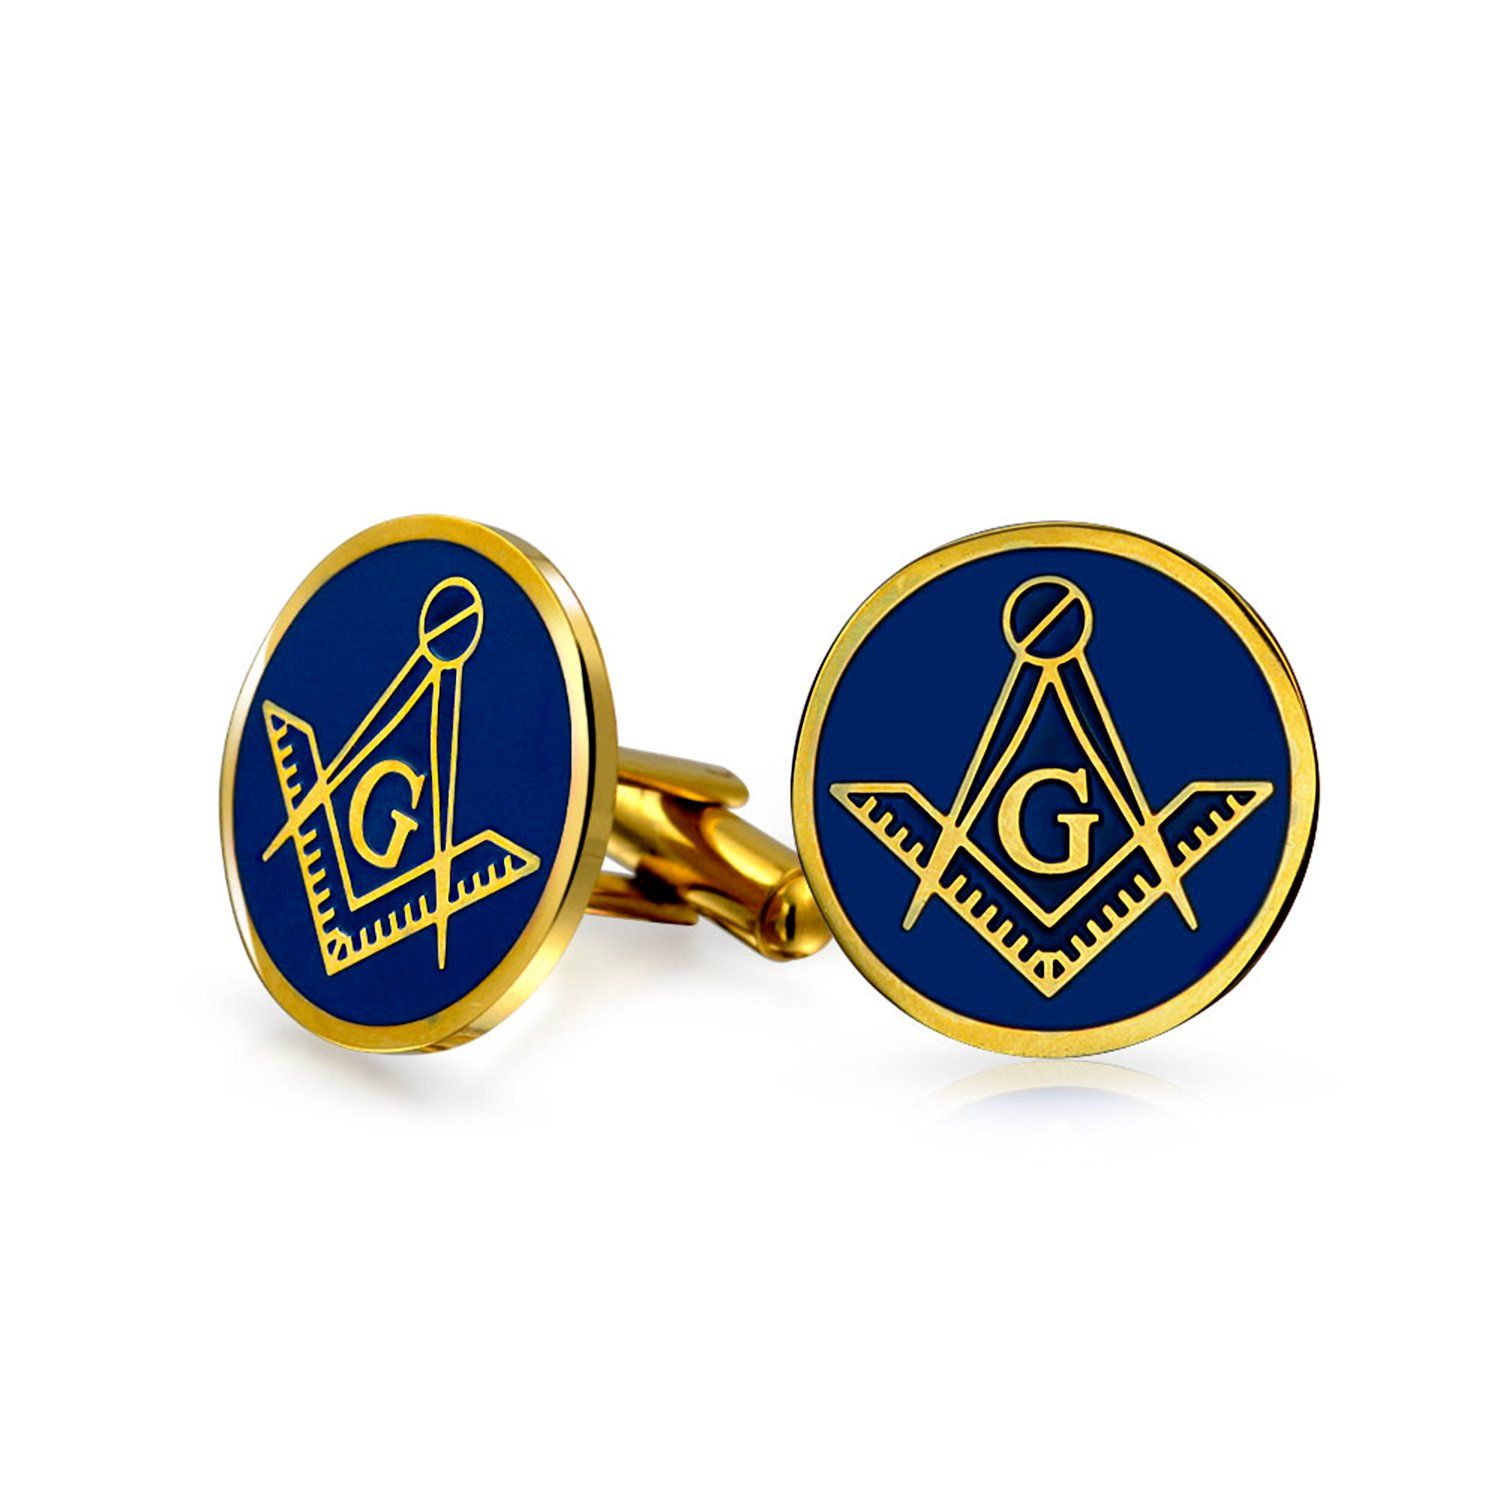 Bling Jewelry Gold Plated Steel Blue Enamel Freemason Masonic Symbol Cufflinks SGD-KKT108